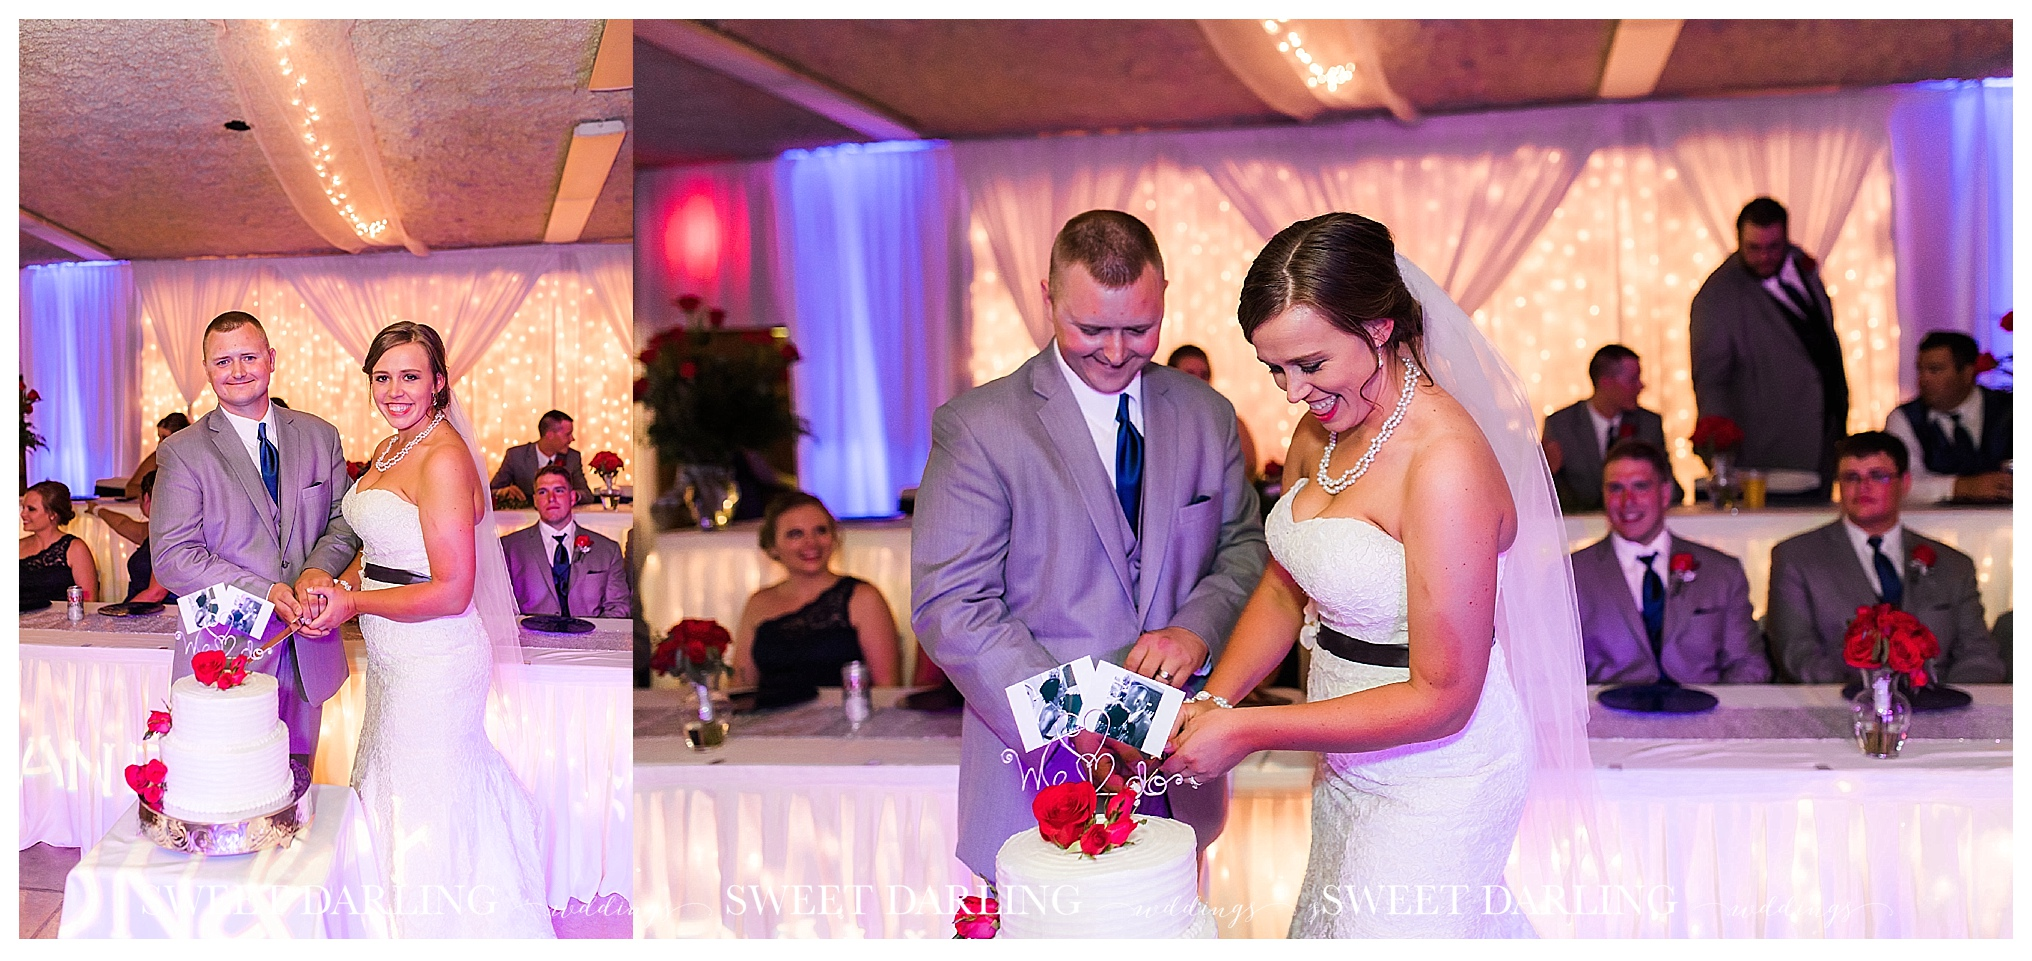 champaign-county-royal-paxton-illinois-sweet-darling-weddings-photography-red-navy-roses_1394.jpg